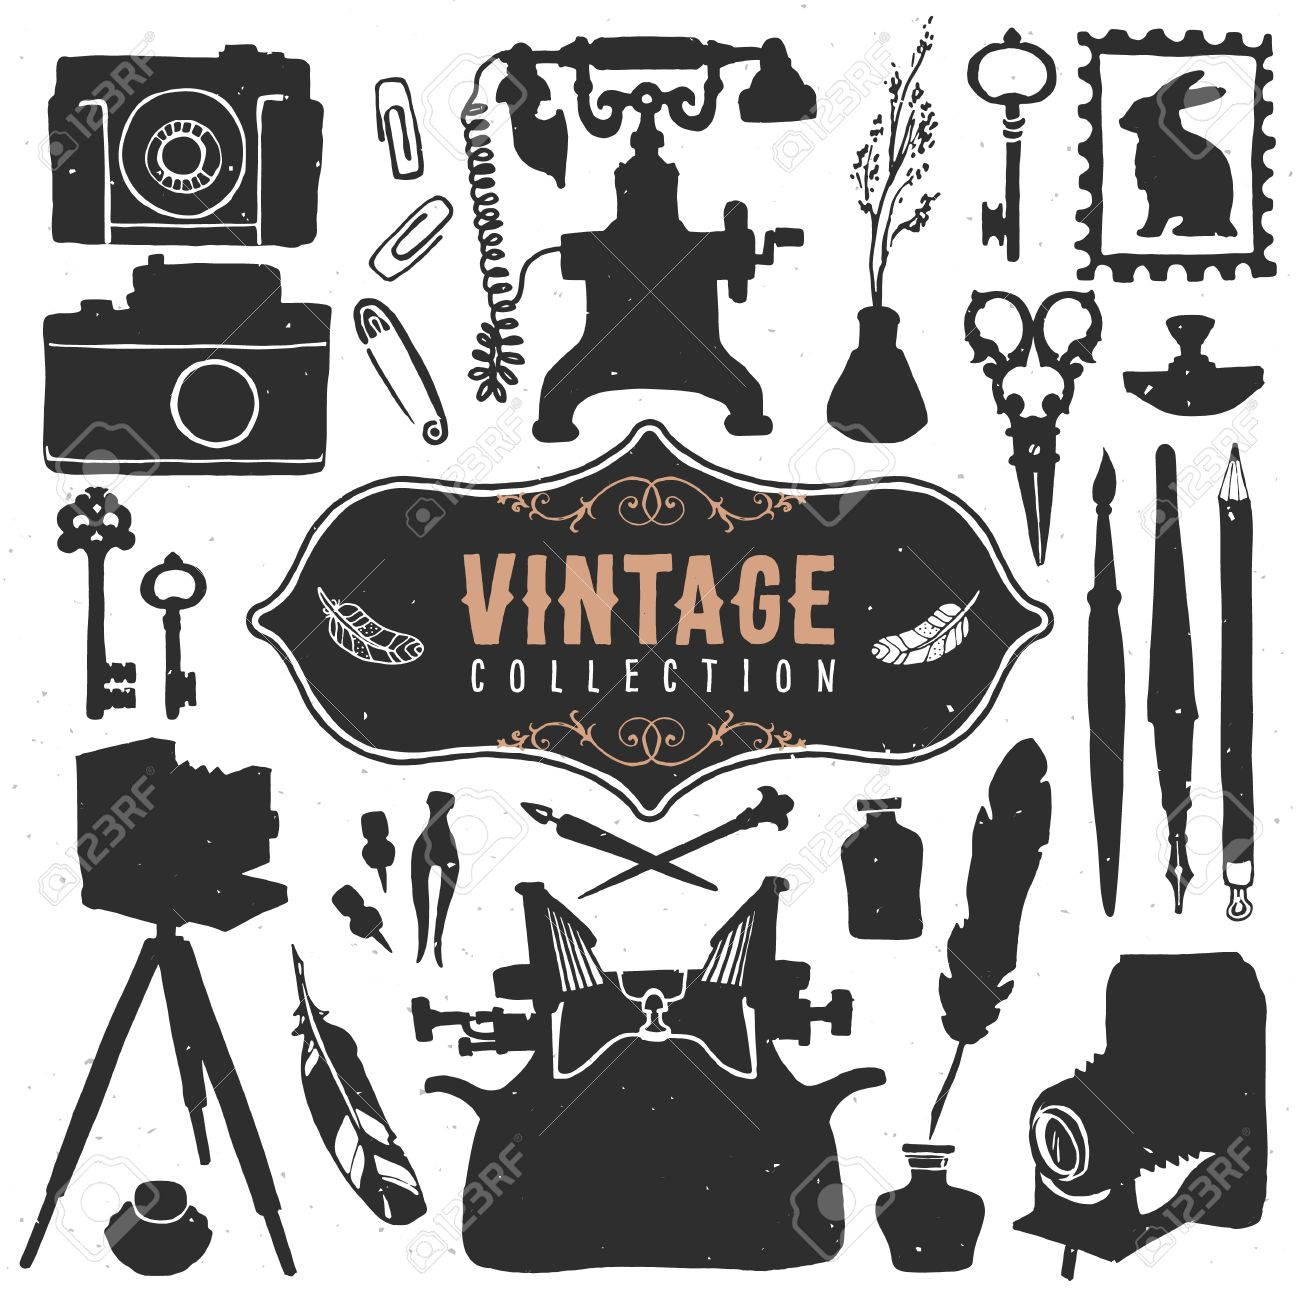 Vintage Retro Old Things Collection. Stock Vector   32407710